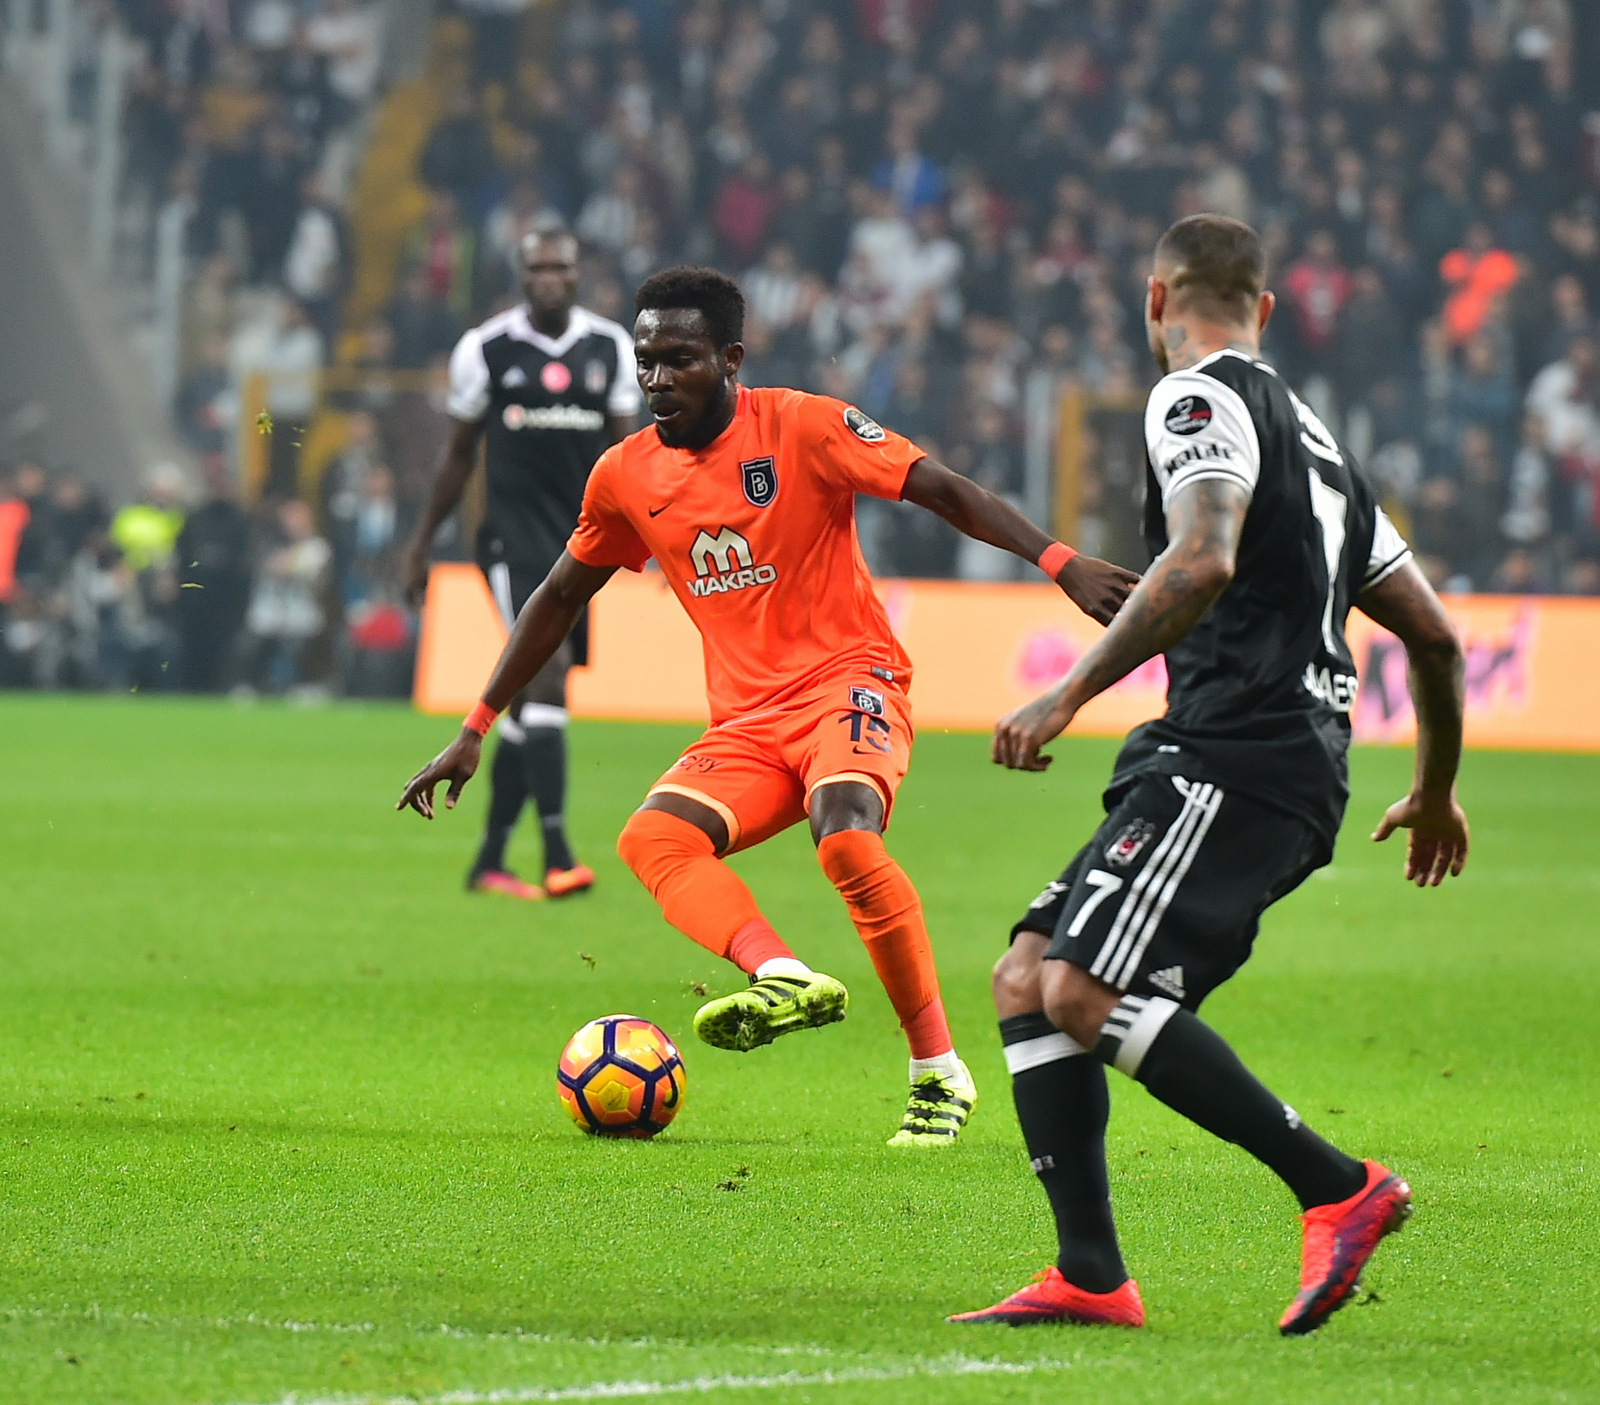 Istanbul Basaksehir FK revenant Joseph Attamah wants to gatecrash Ghana's AFCON squad